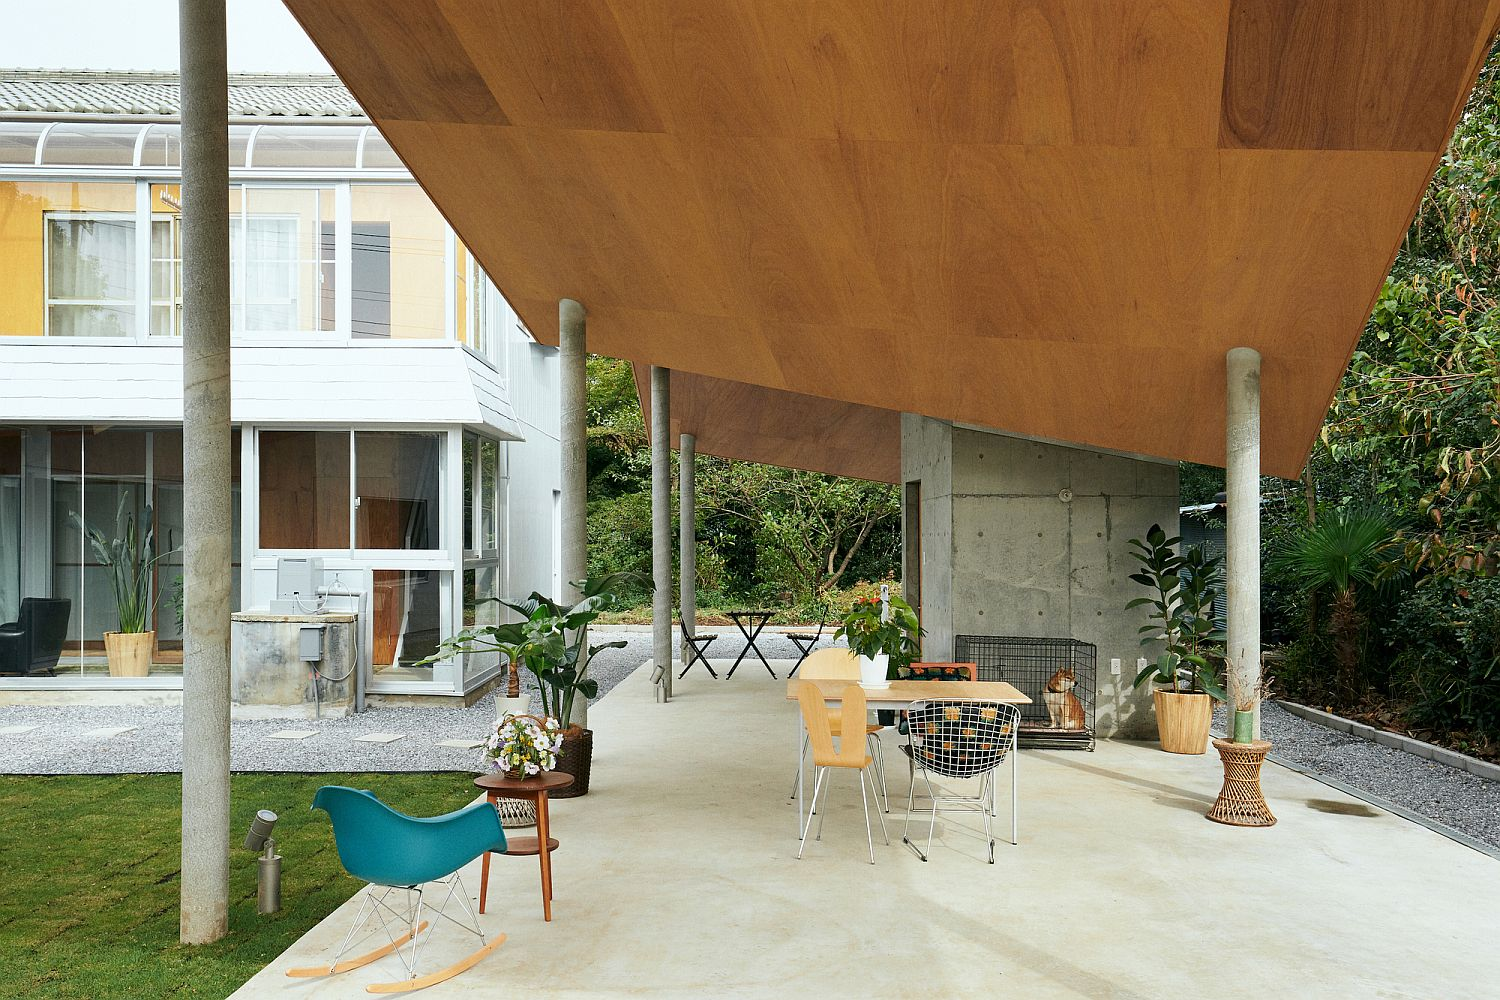 New-sitting-area-feels-like-a-natural-extension-of-the-house